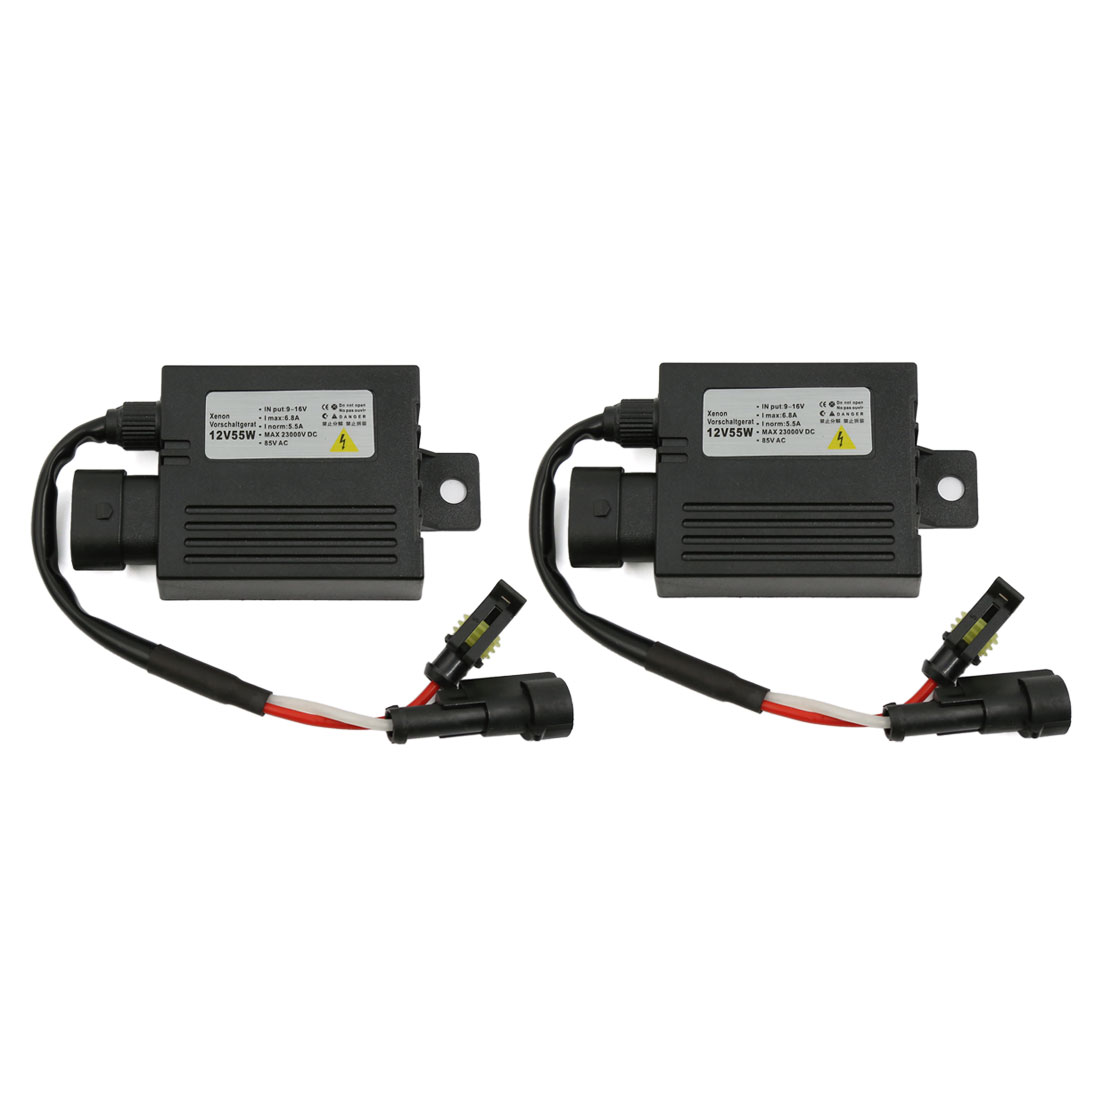 2 Pcs 12V 55W HID Slim Ballast Xenon Conversion for H1 H4 H7 H10 H11 9005 Bulb